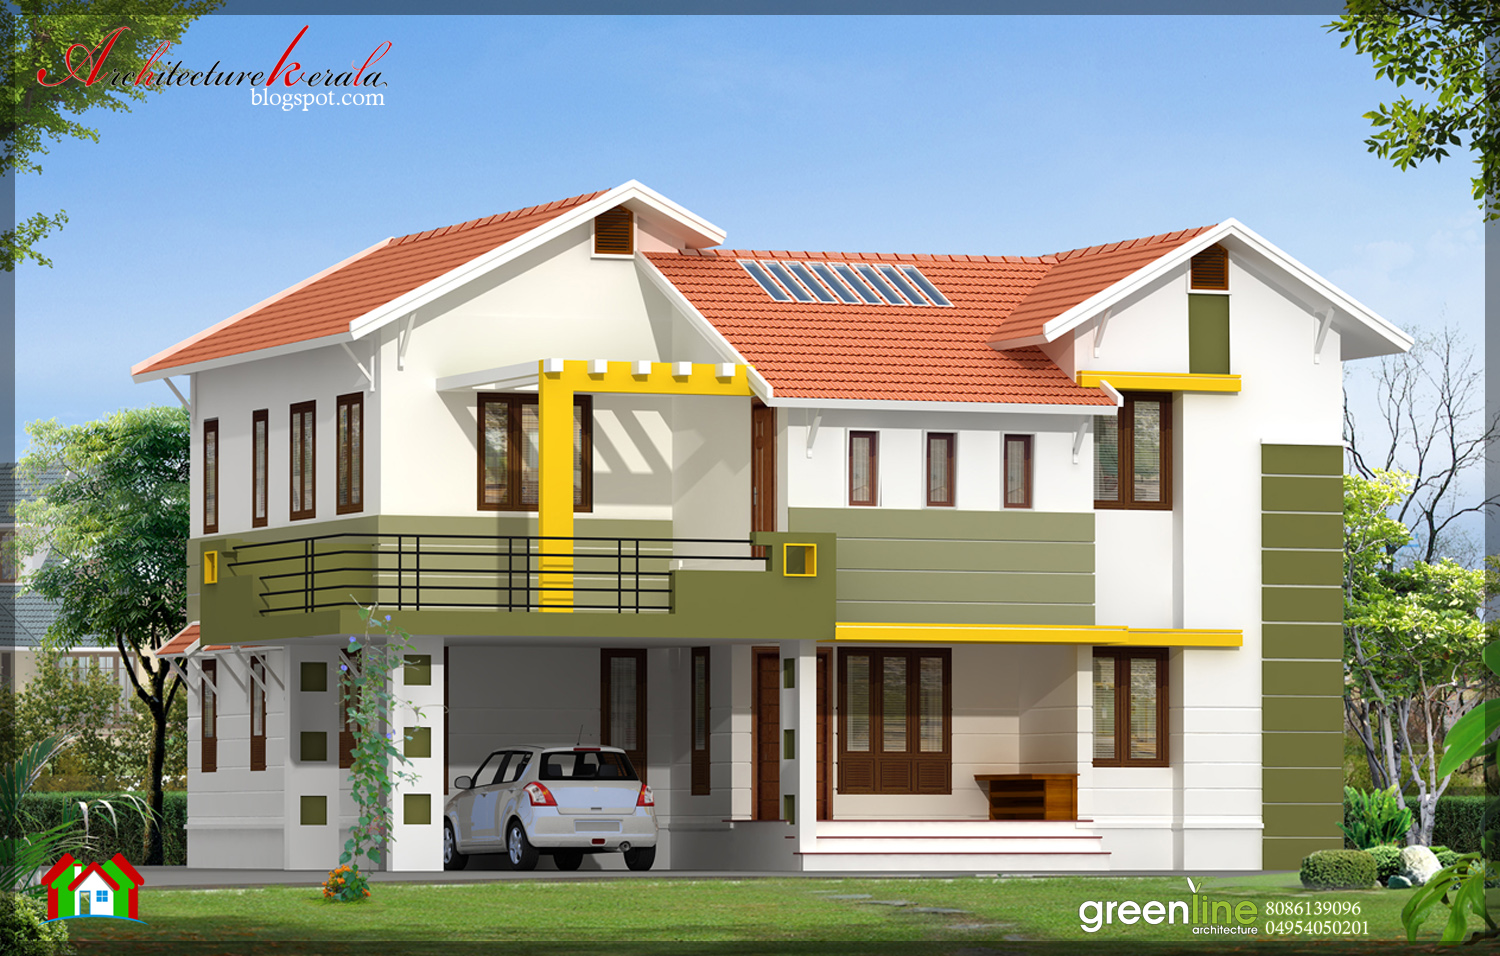 Architecture Kerala 4 Bhk Contemporary Style Indian Home: indian house structure design